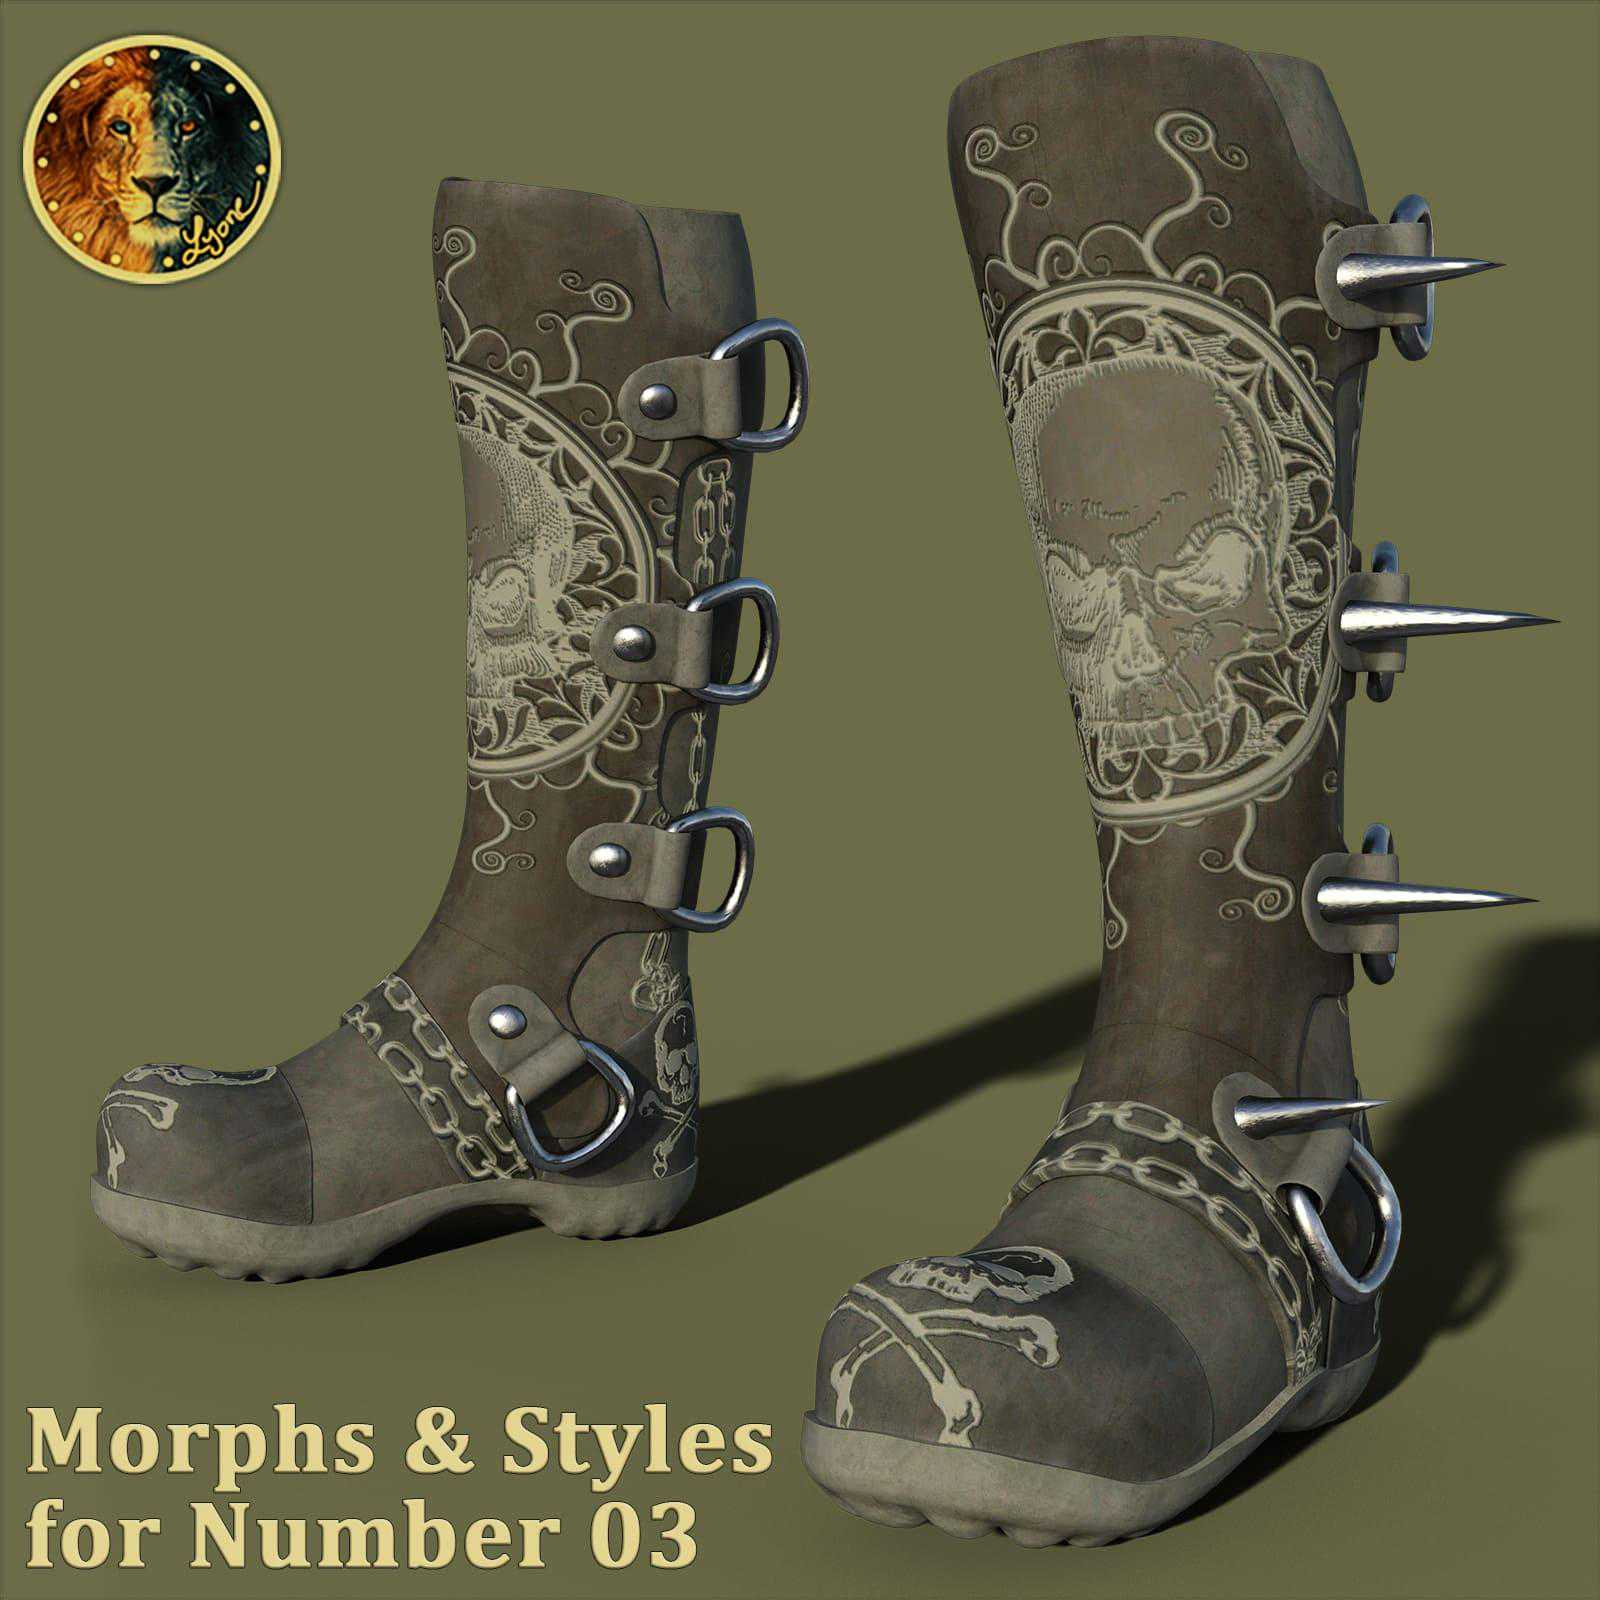 Morphs and Styles for Number 03